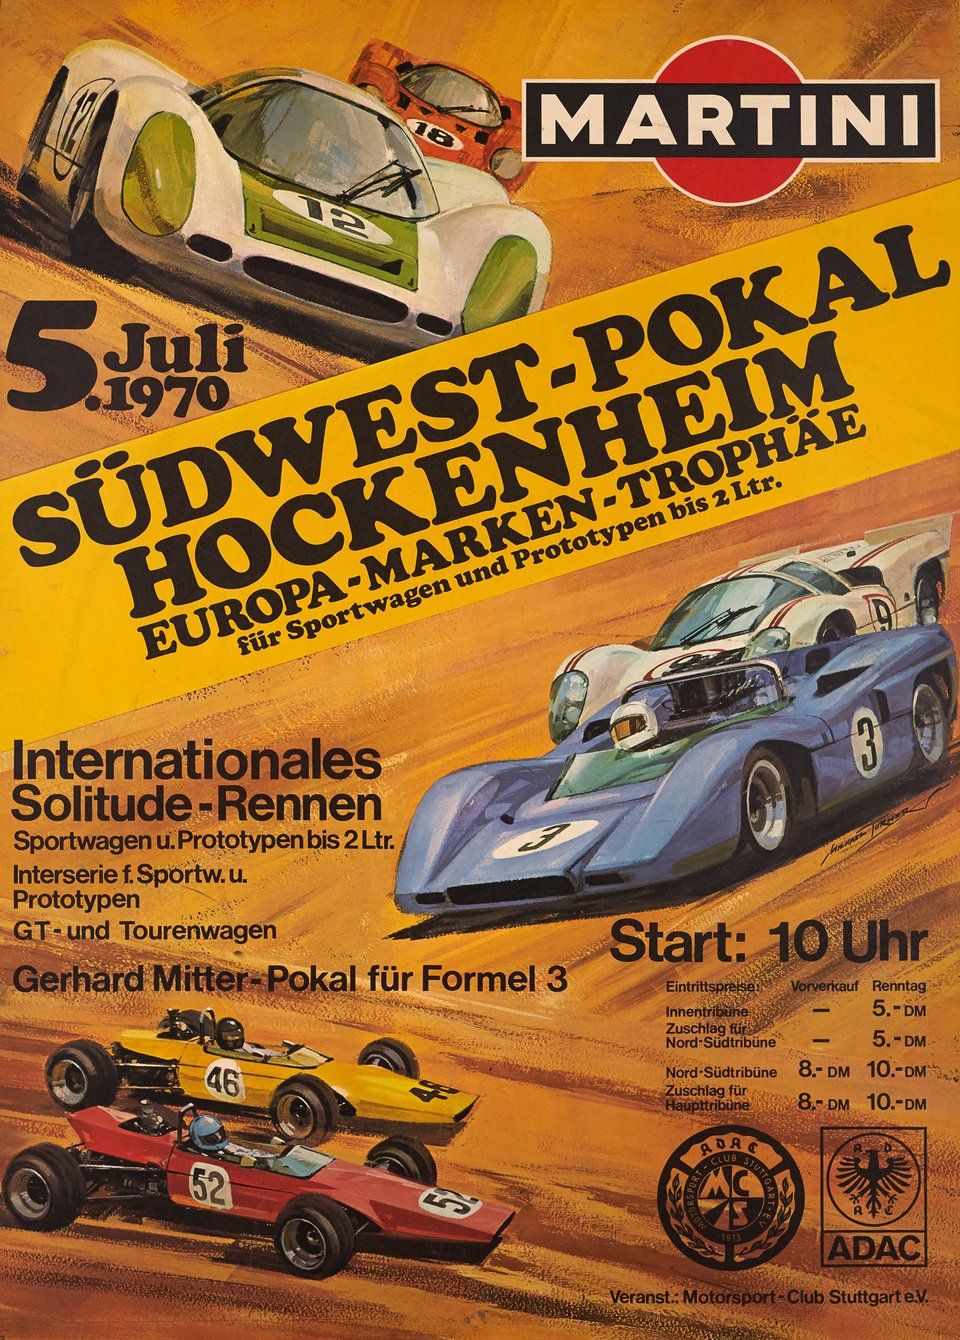 Grand Prix Südwest-Pokal Hockenheim, Martini – Affiche ancienne – Michael TURNER – 1970